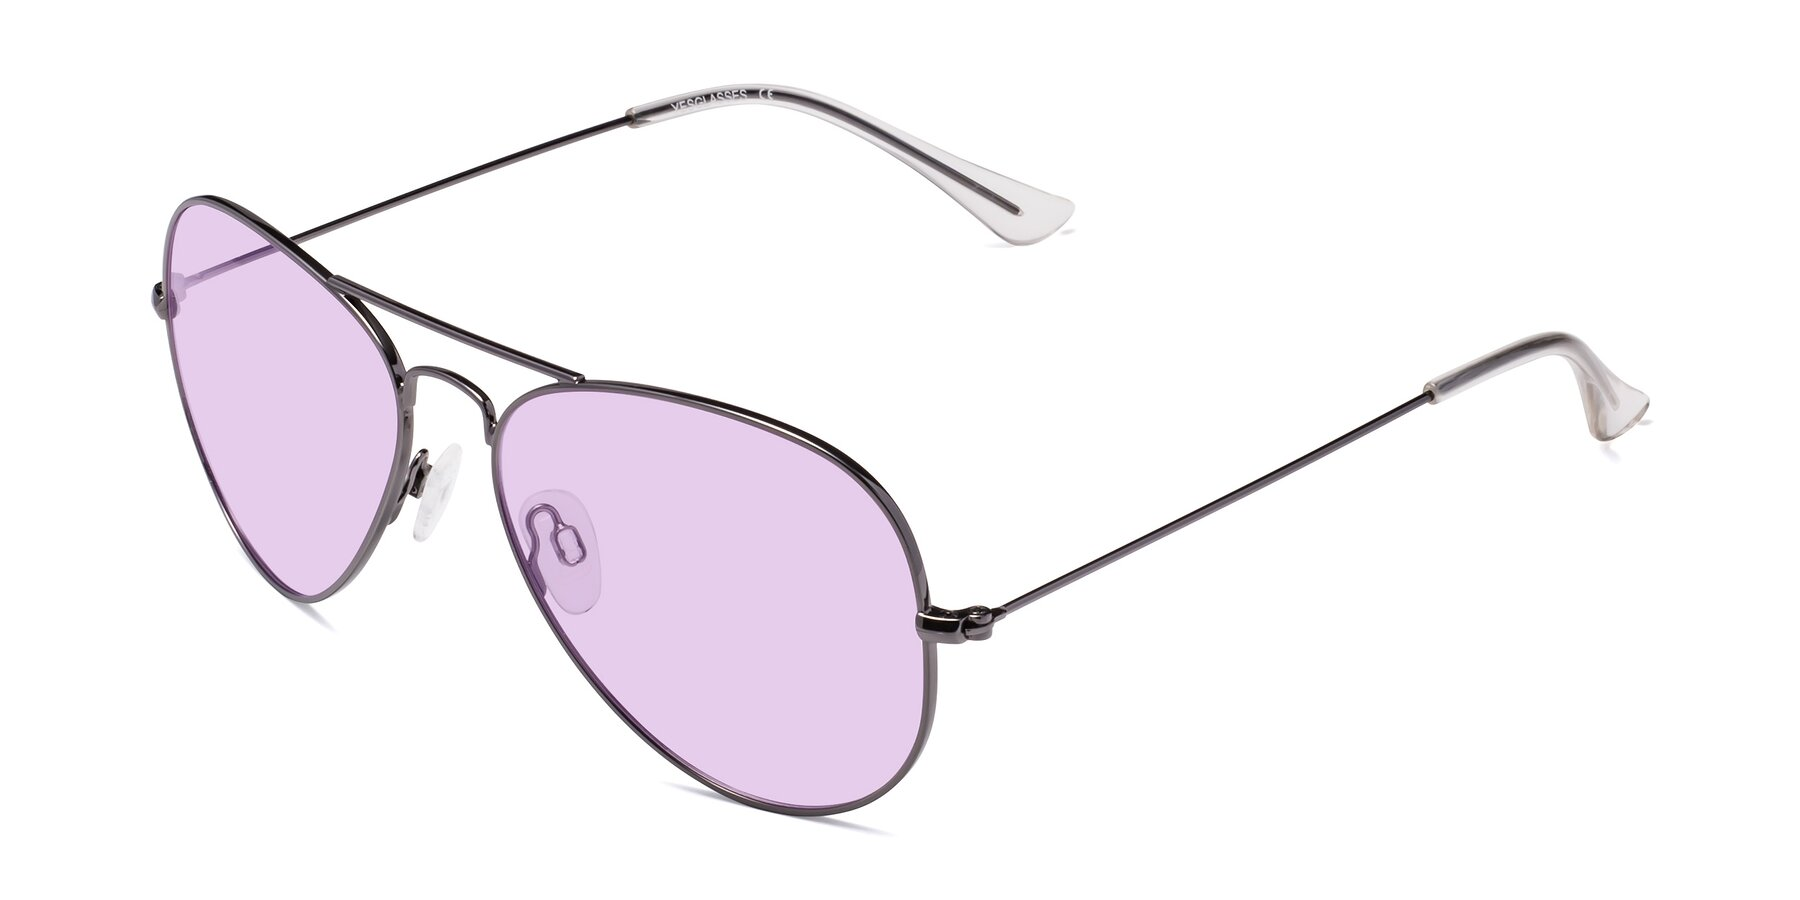 Angle of Yesterday in Gunmetal with Light Purple Tinted Lenses